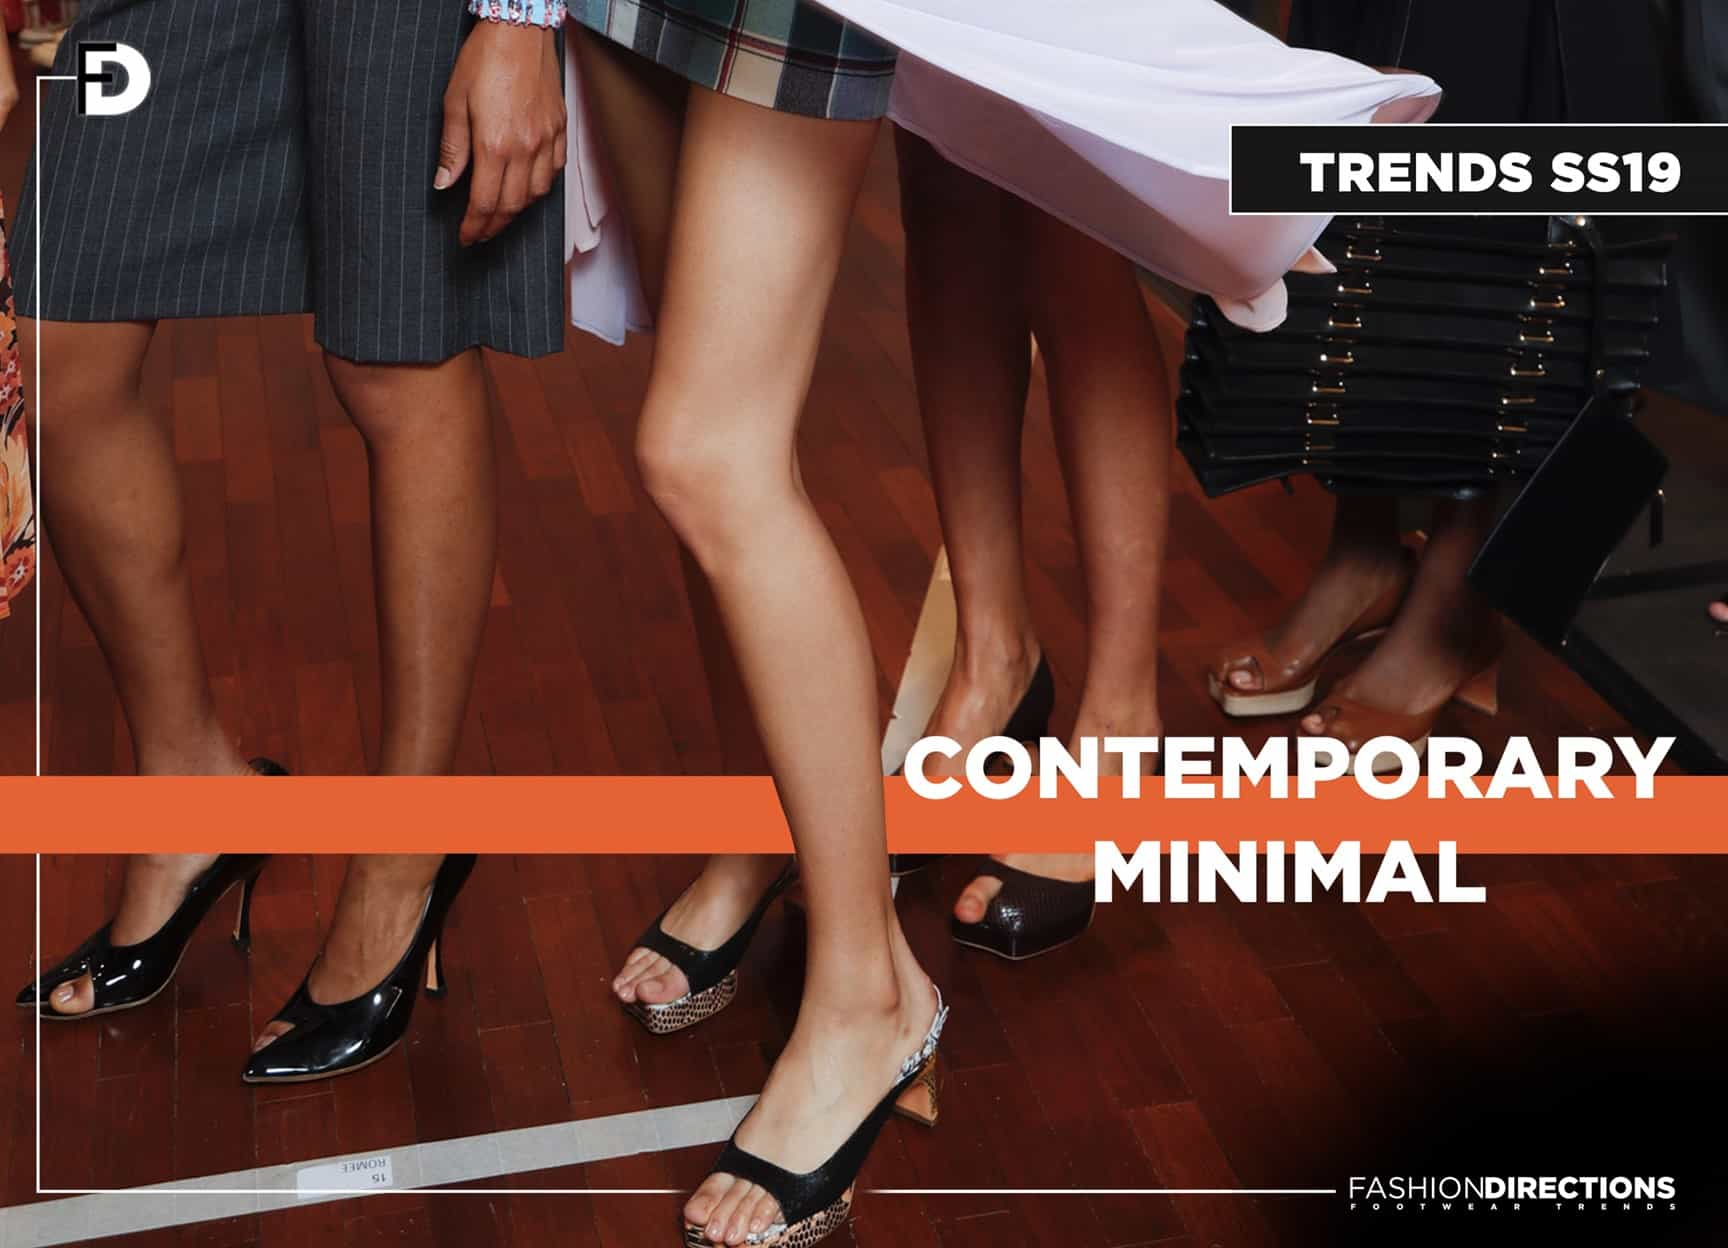 SS19 trends Contemporary Minimal